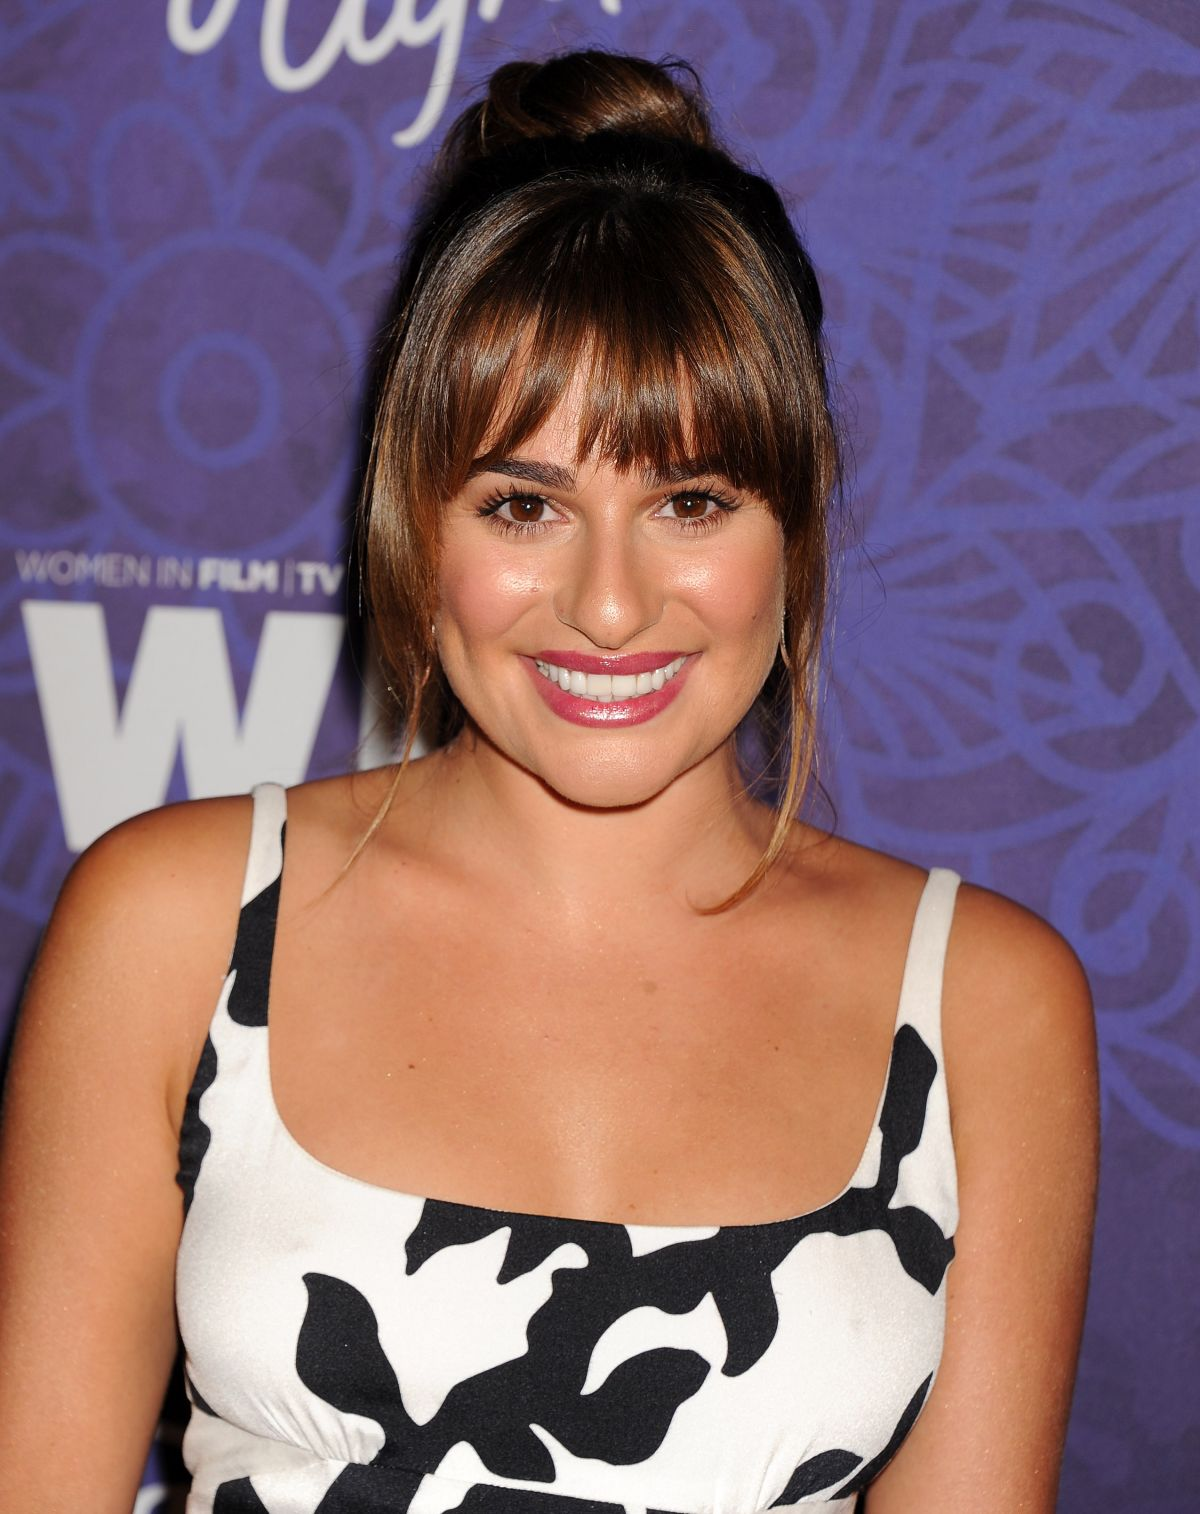 LEA MICHELE at Vriety and Women in Film Emmy Nominee Celebration